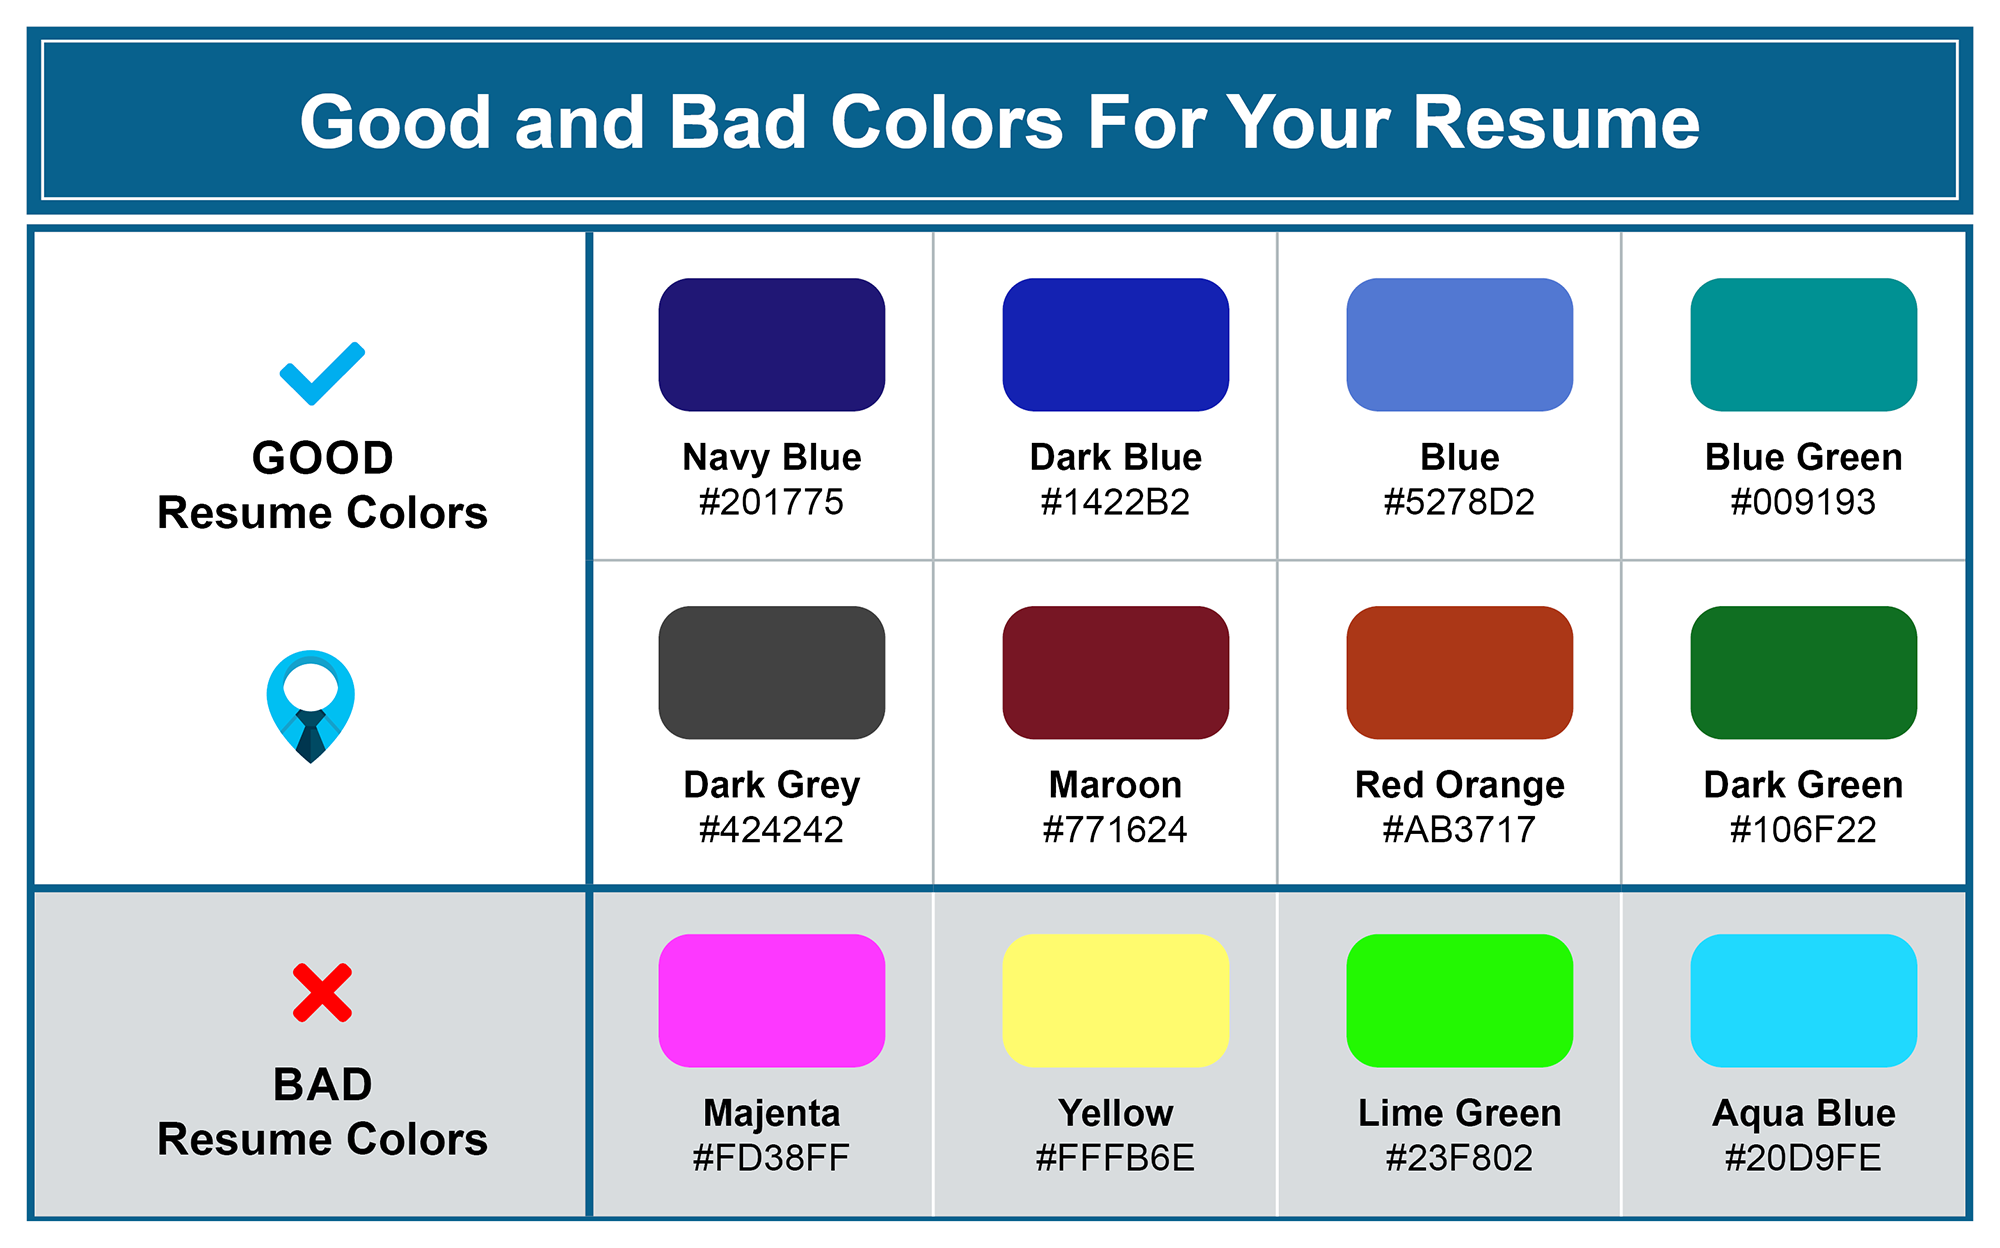 Good and Bad Colors for a Resume